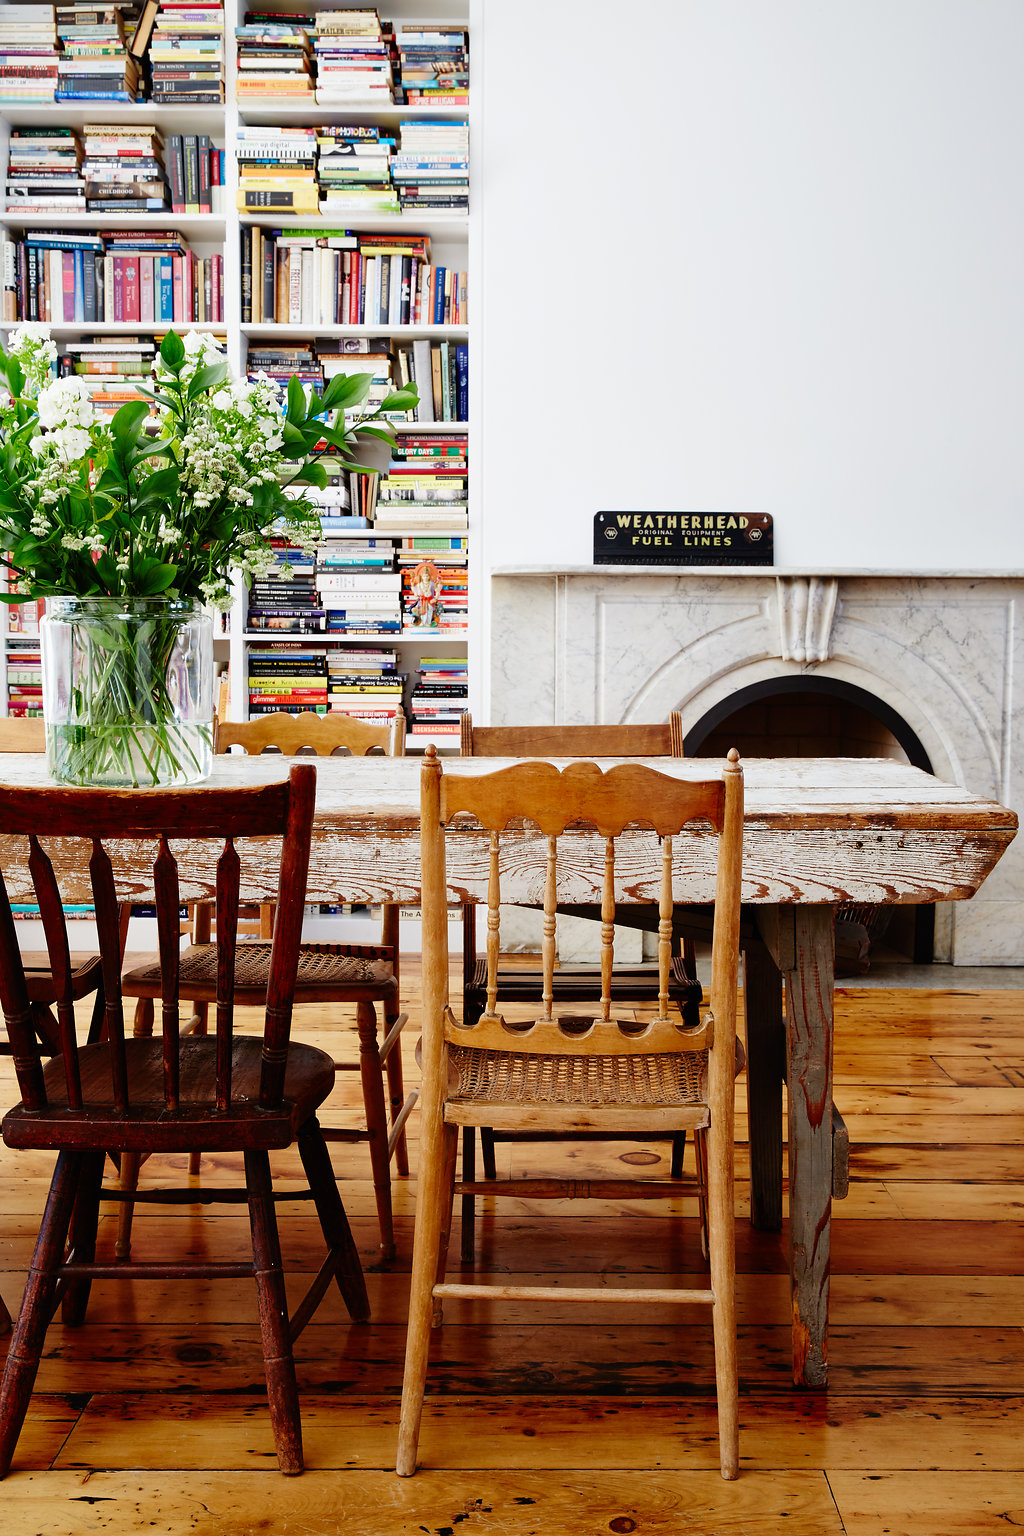 Modern Farmhouse Style in the heart of Brooklyn, NY  |  City Farmhouse Style  Home of Odette Williams + Nick Law, New York Interior Design: Odette Williams  |  Architect:  Lorraine Bonaventura Architect   |  Photography: Nicole Franzen